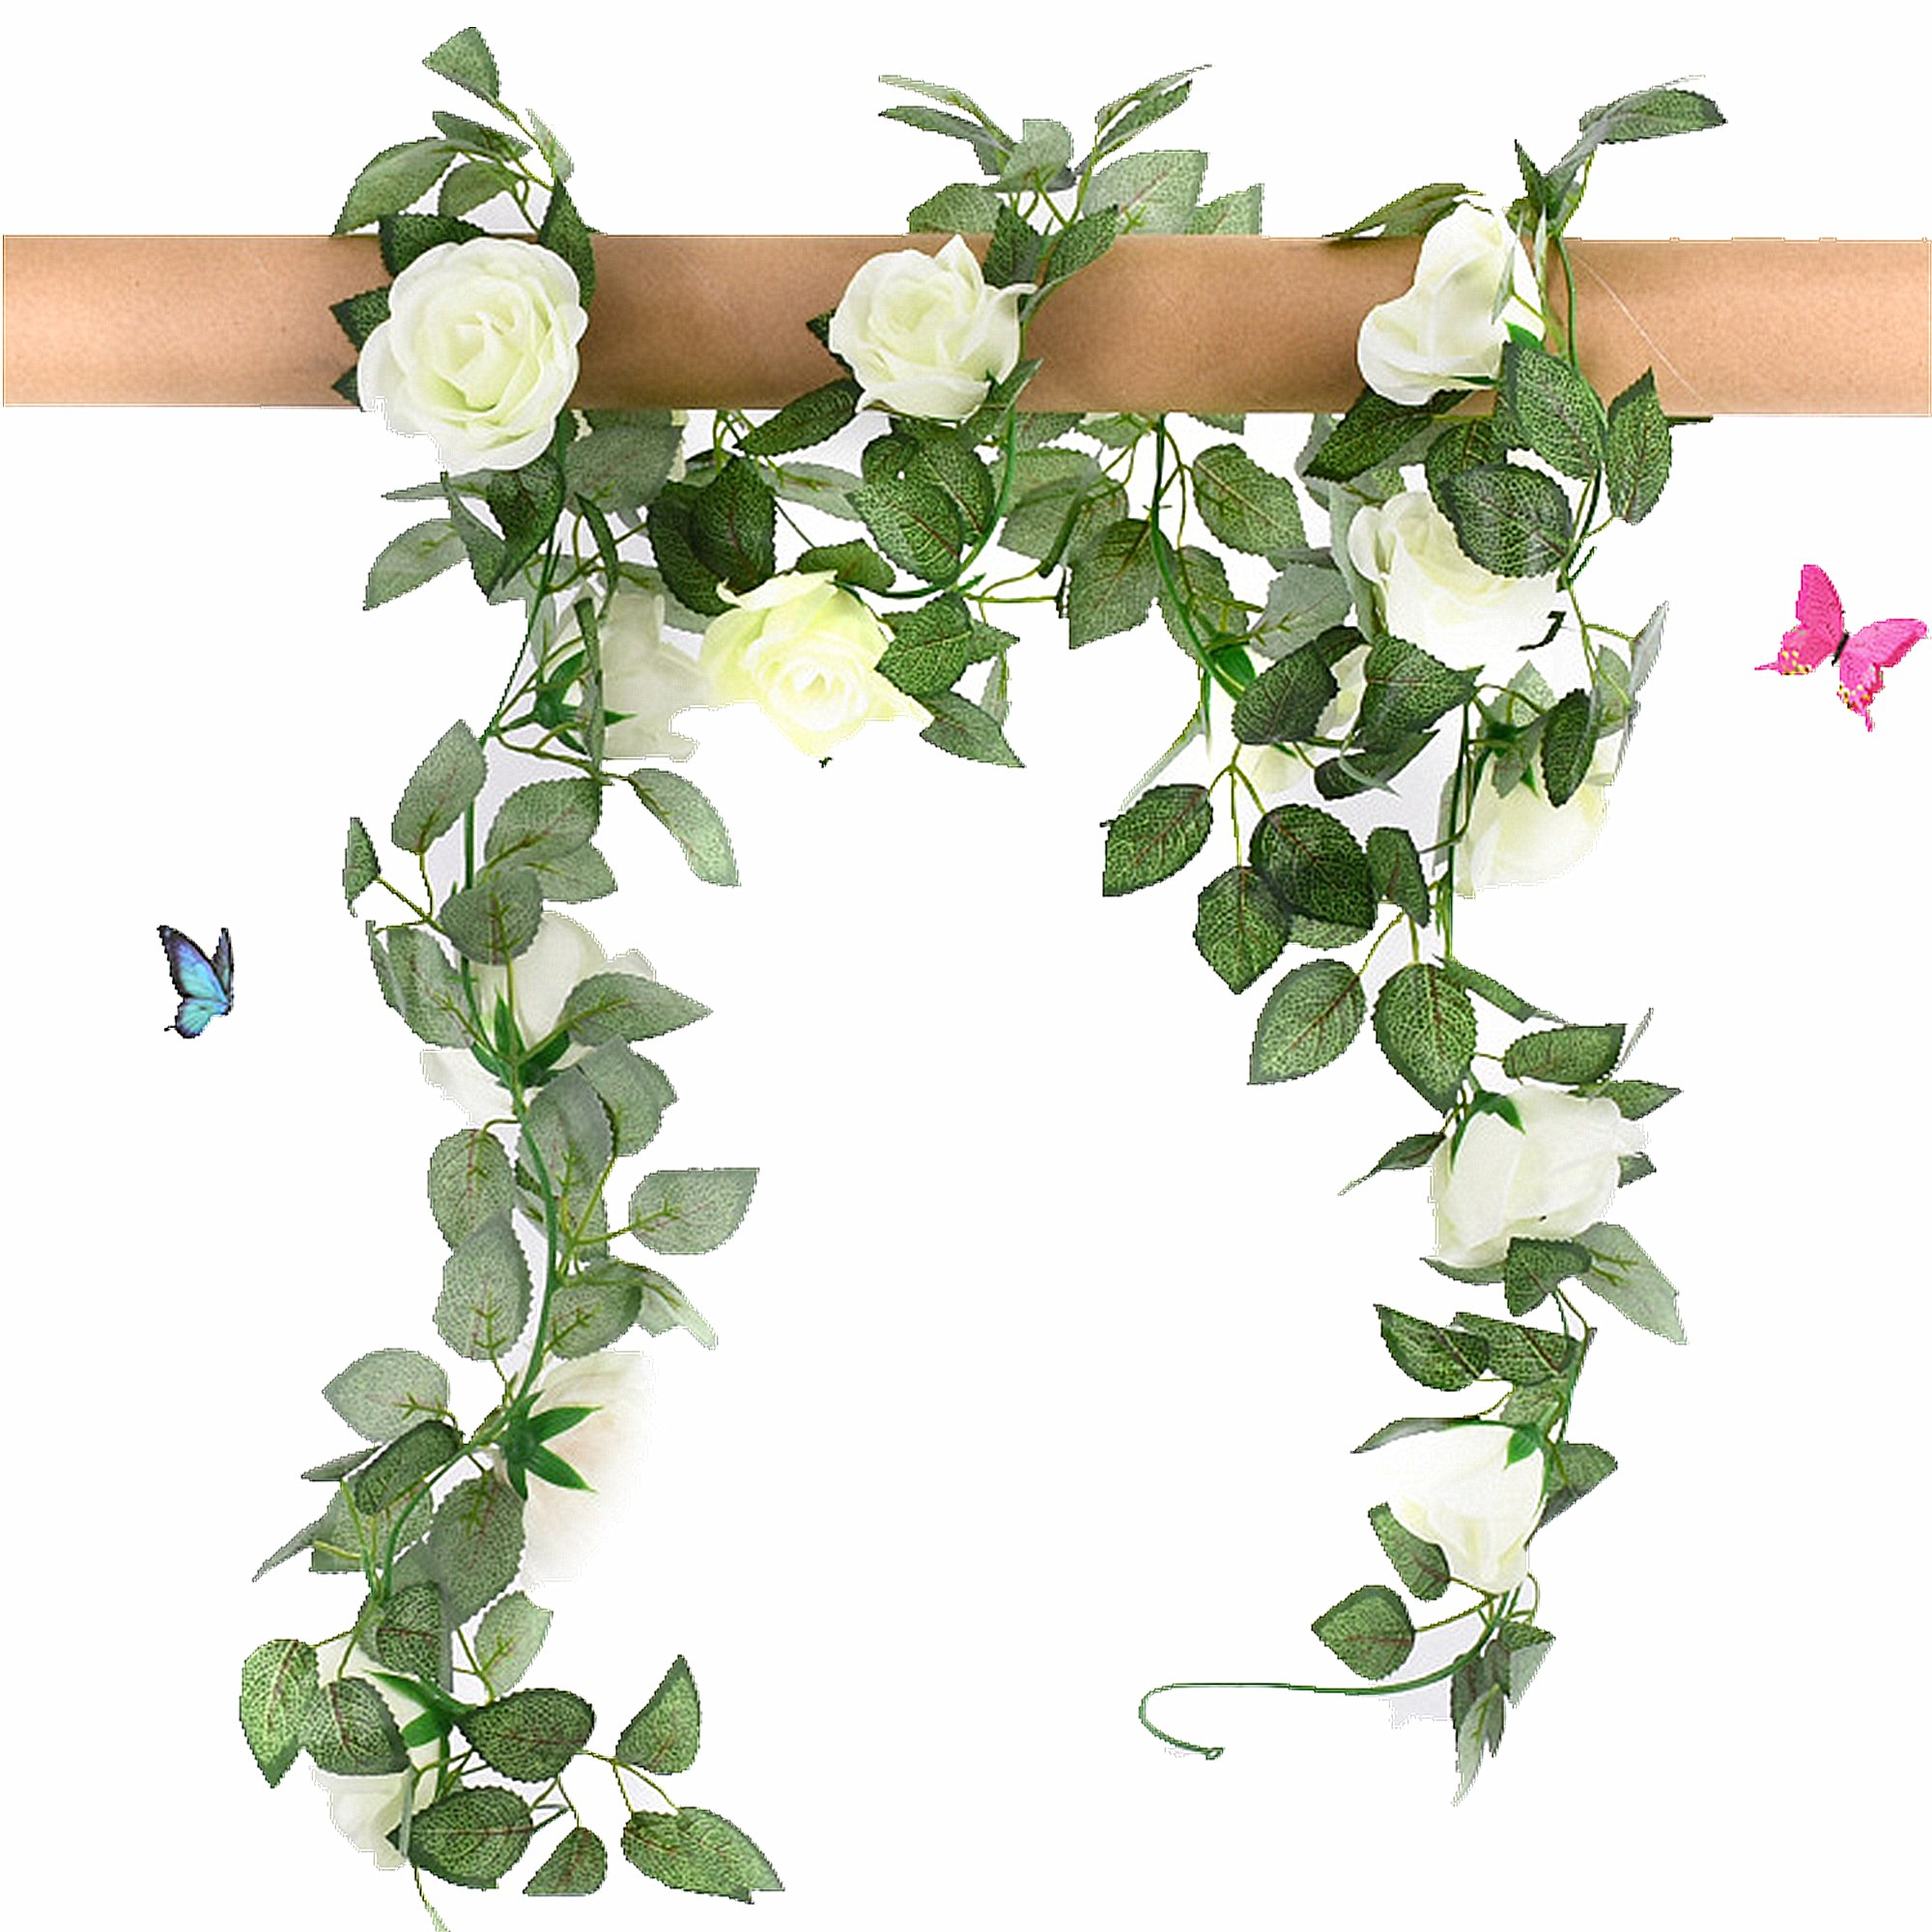 Greentime-2-Pcs-Fake-Flowers-Vine-78-FT-16-Heads-Silk-Artificial-Roses-Garland-Plant-for-Wreath-Wedding-Party-Home-Garden-Wall-Decoration-Cream